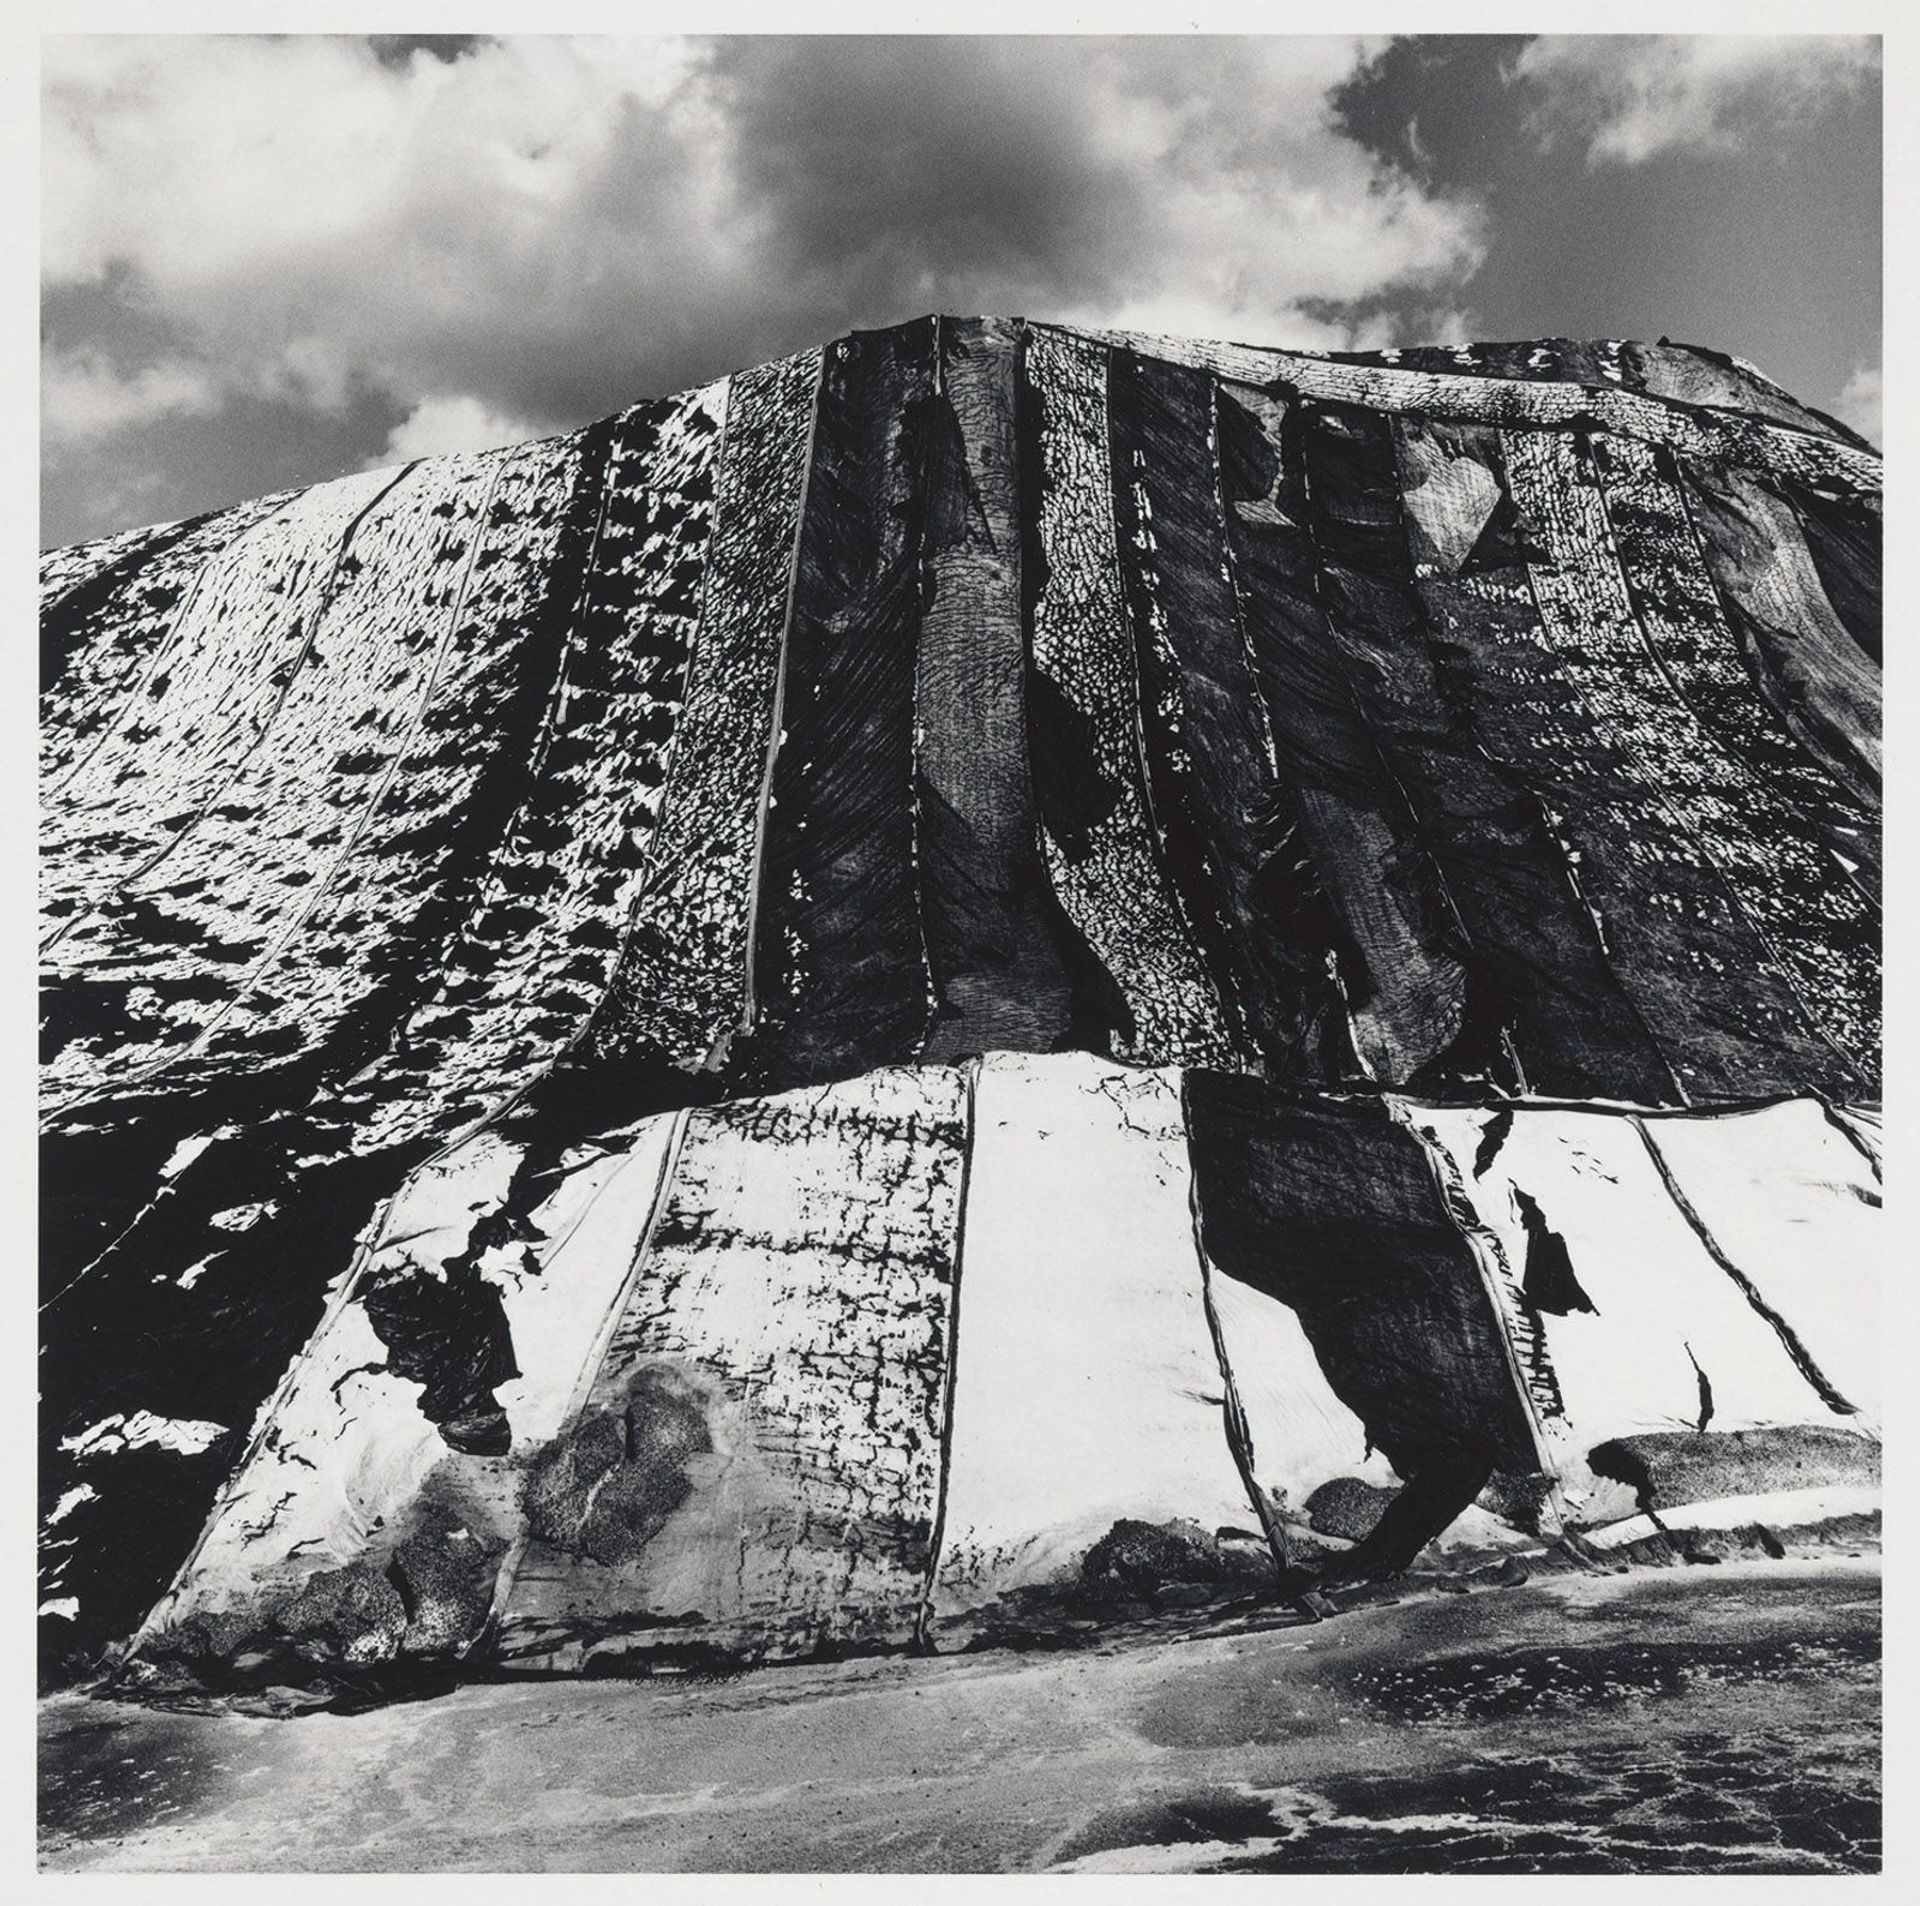 Rich texture and high contrast in Salt Pile (1971) by Al Fennar, who was influenced by Japanese post-war photography © Miya Fennar and The Albert R. Fennar Archive, and Virginia Museum of Fine Arts